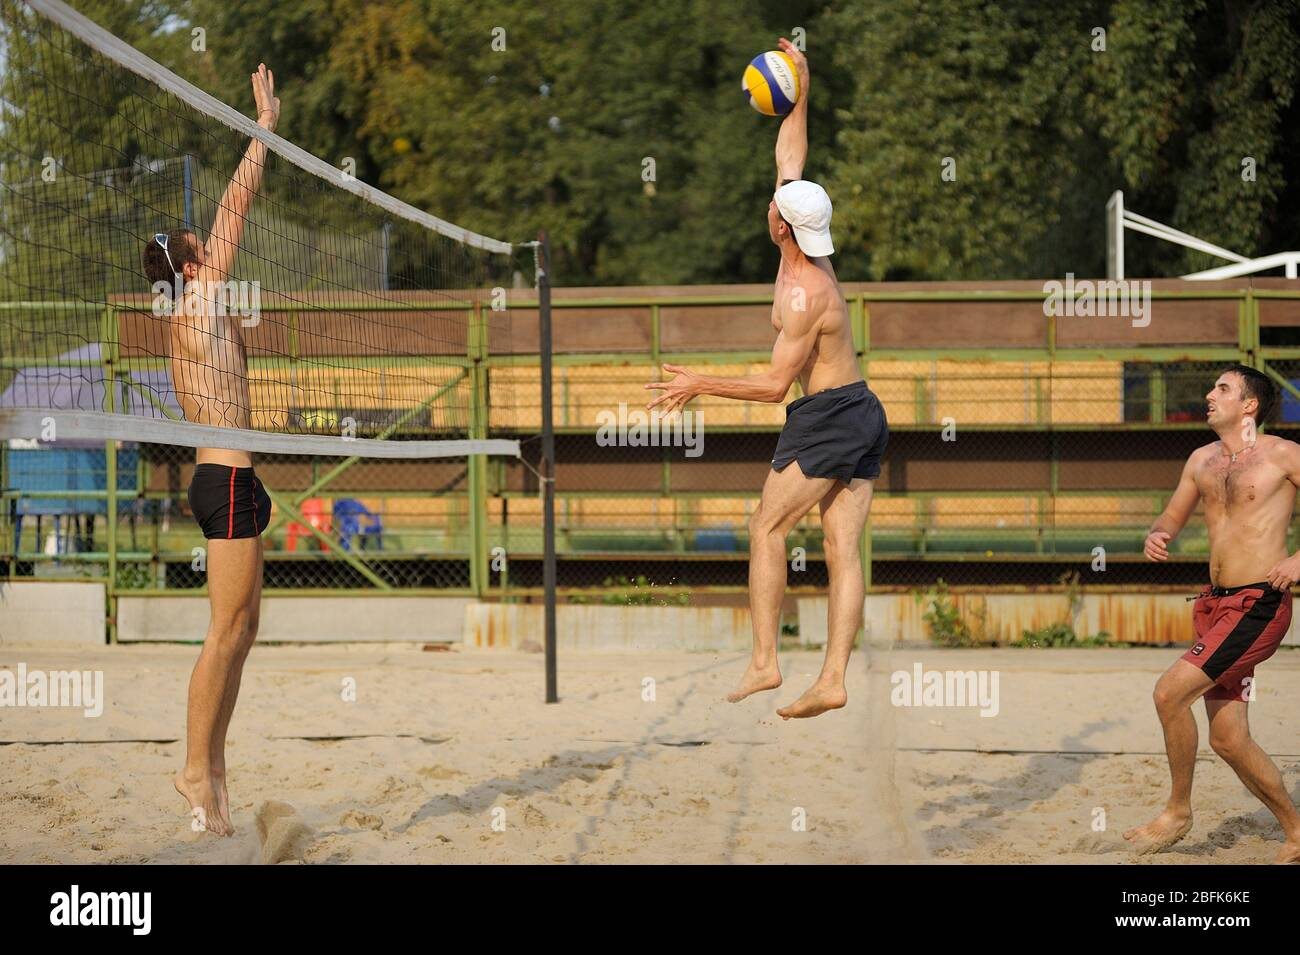 Beach Volleyball Field High Resolution Stock Photography And Images Alamy